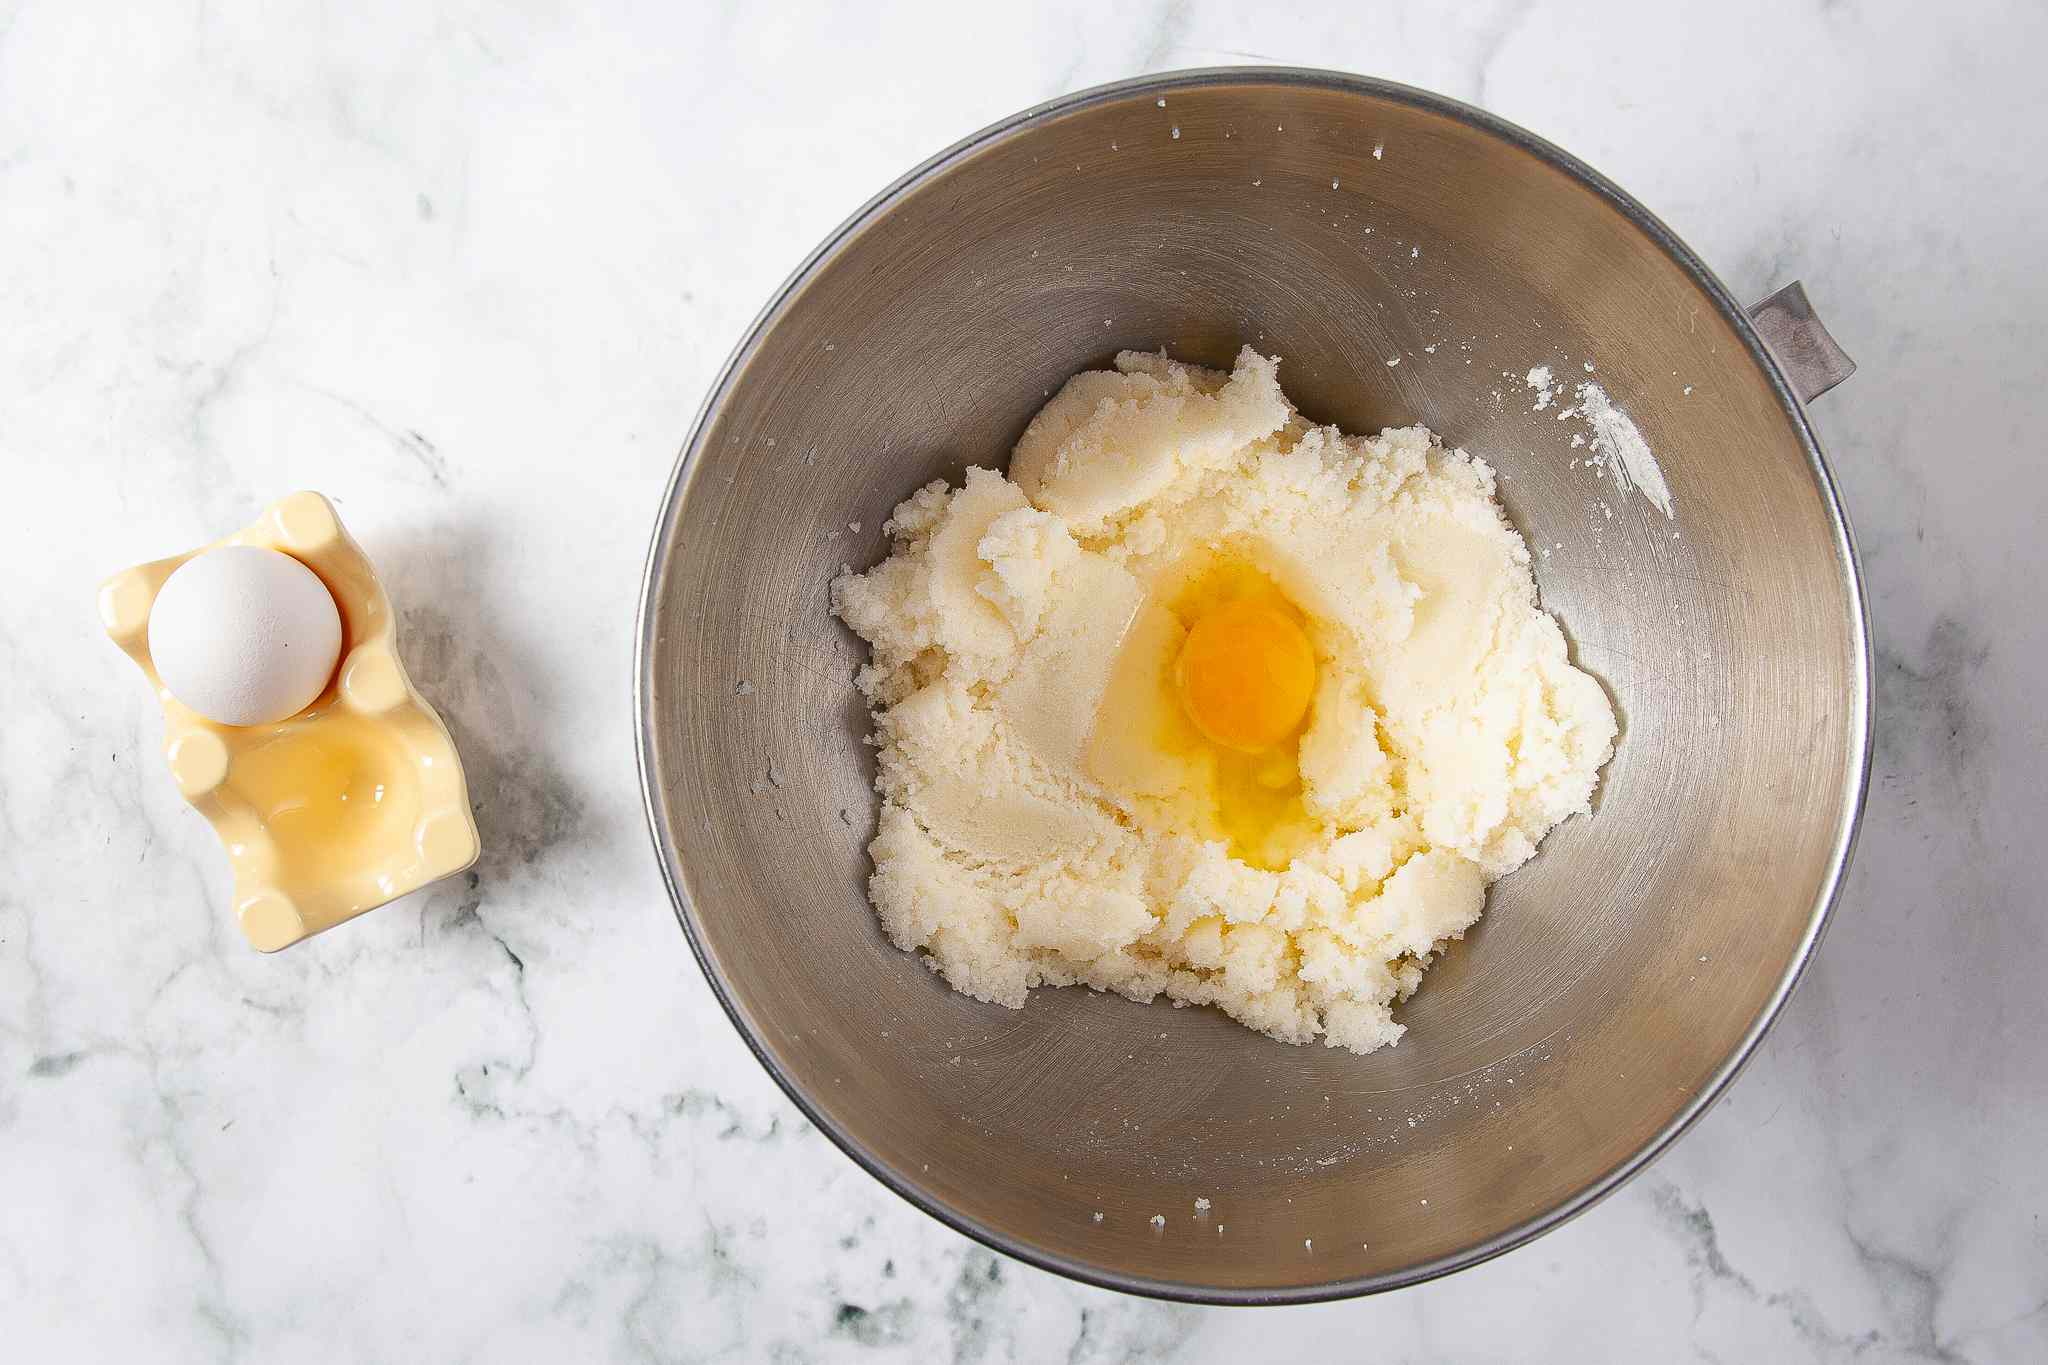 Egg added to the butter and sugar mixture